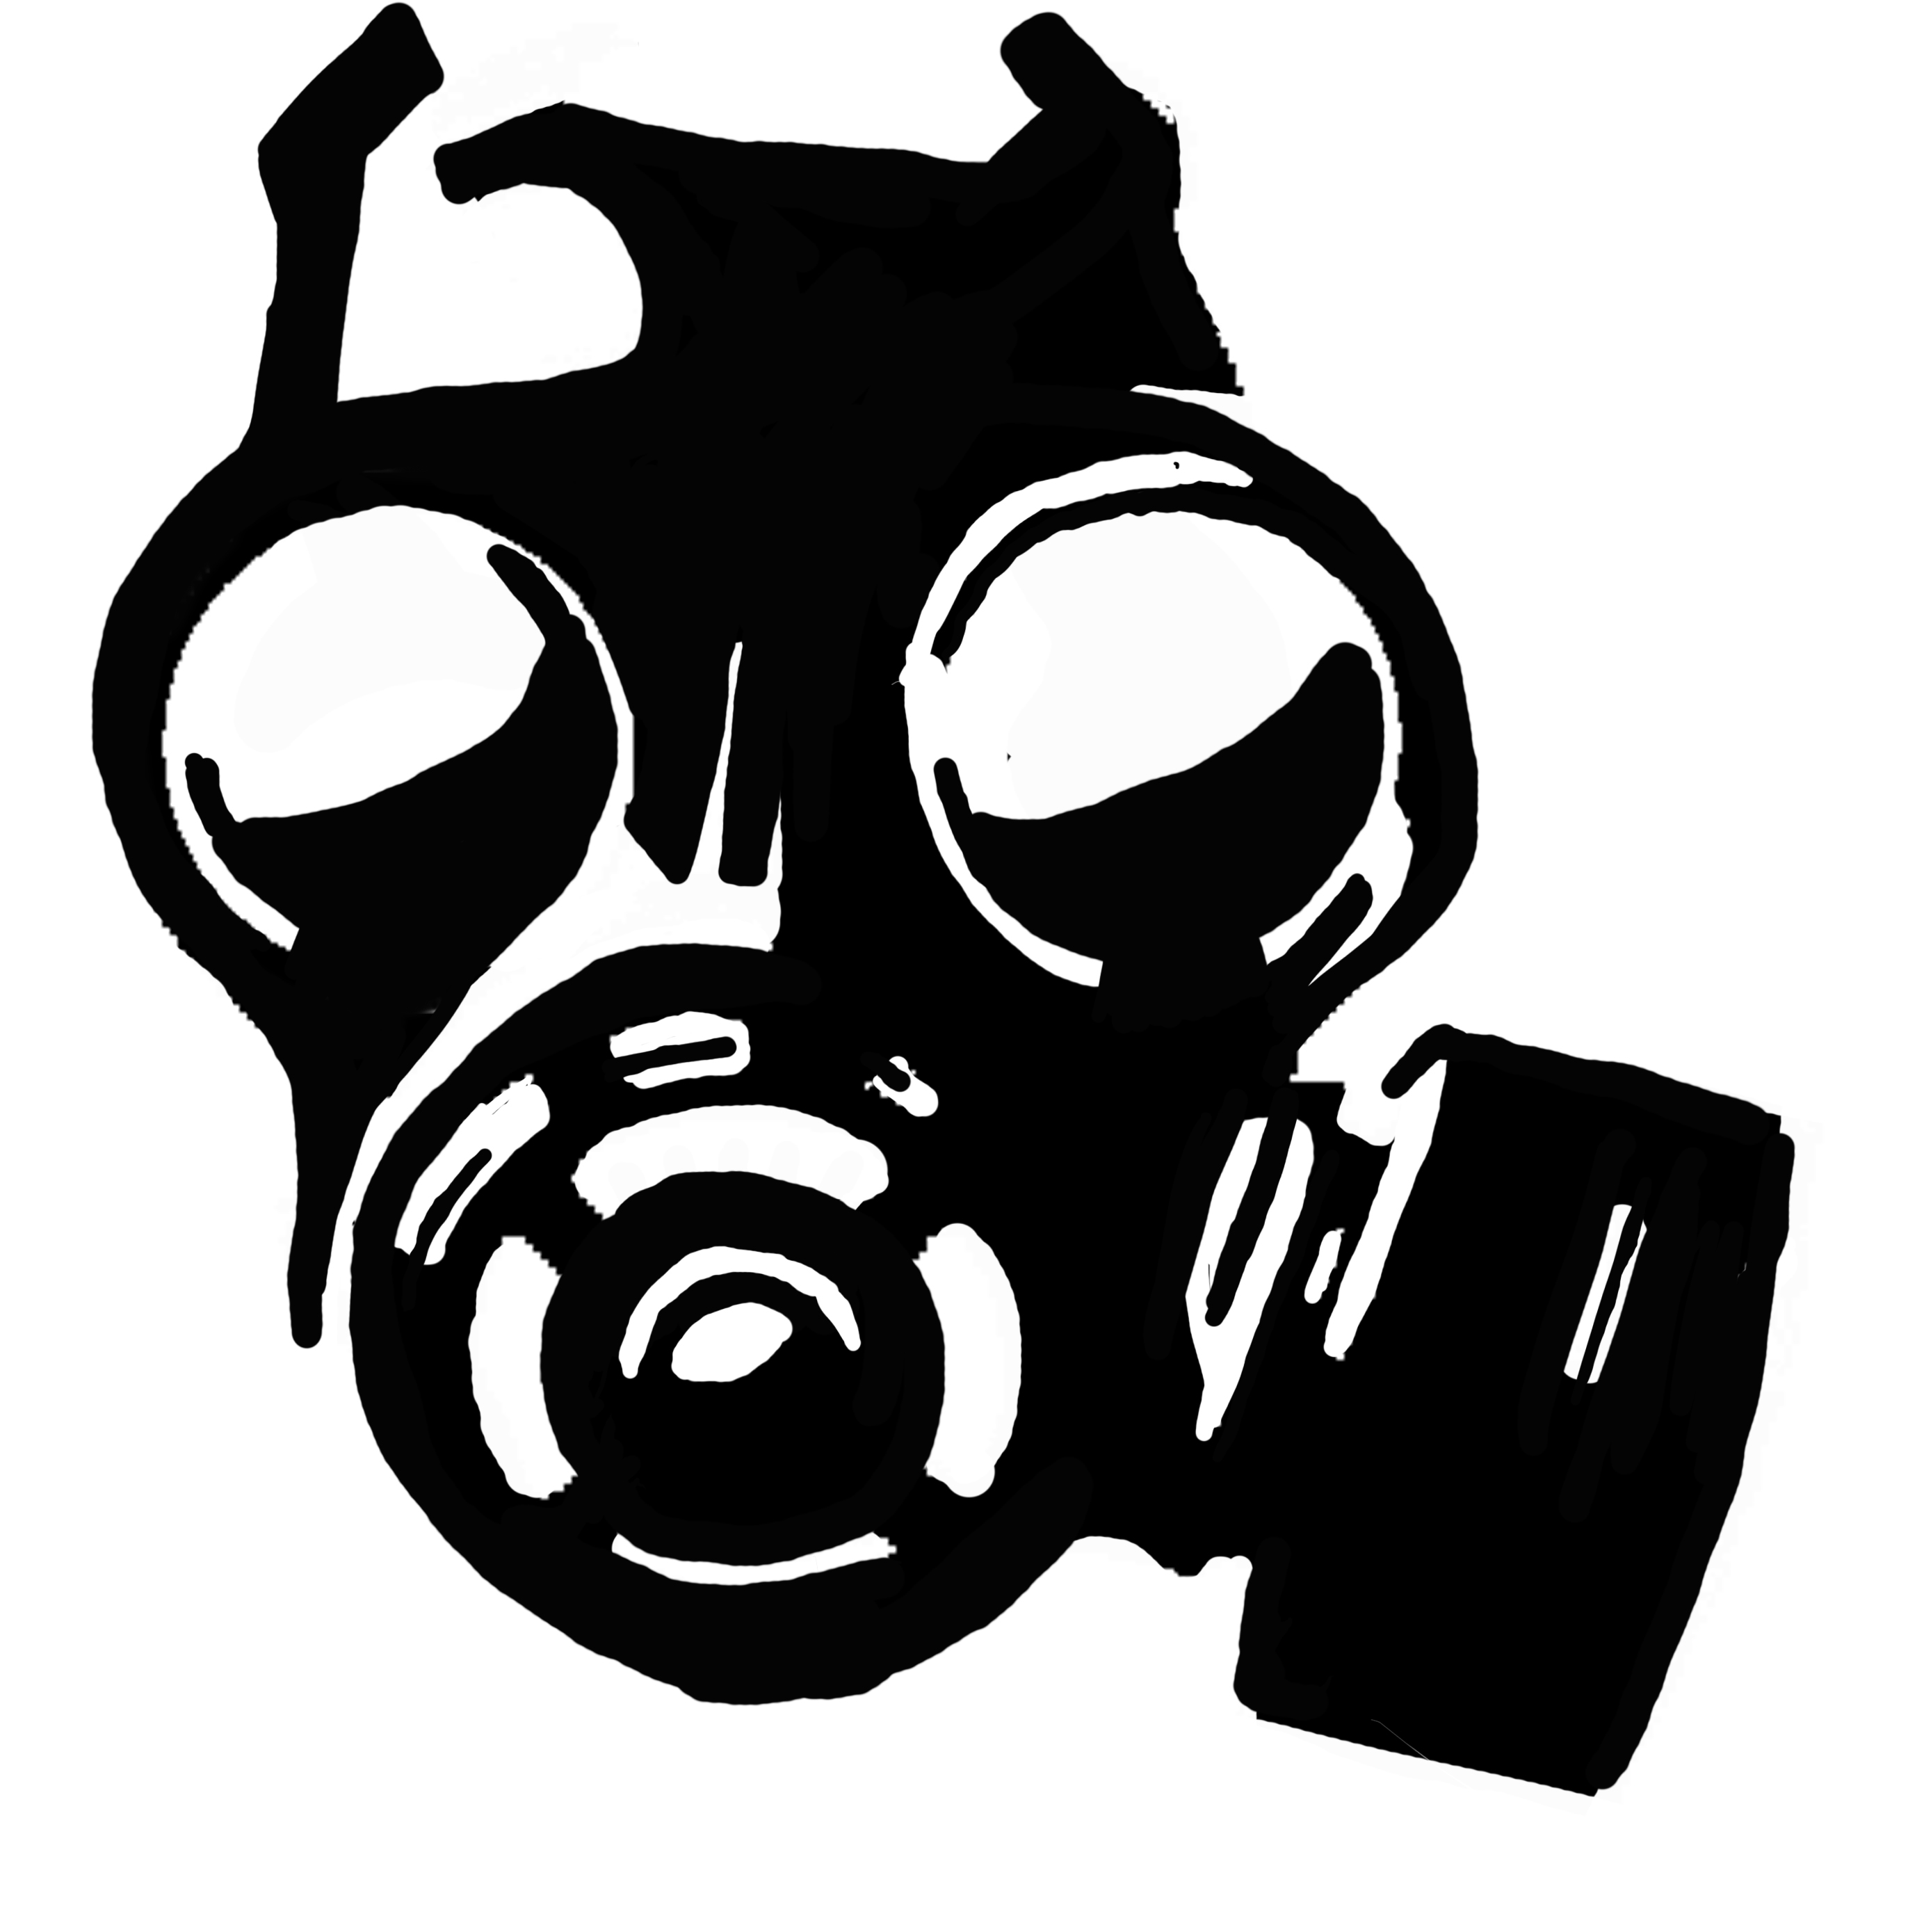 Gas Mask clipart #12, Download drawings